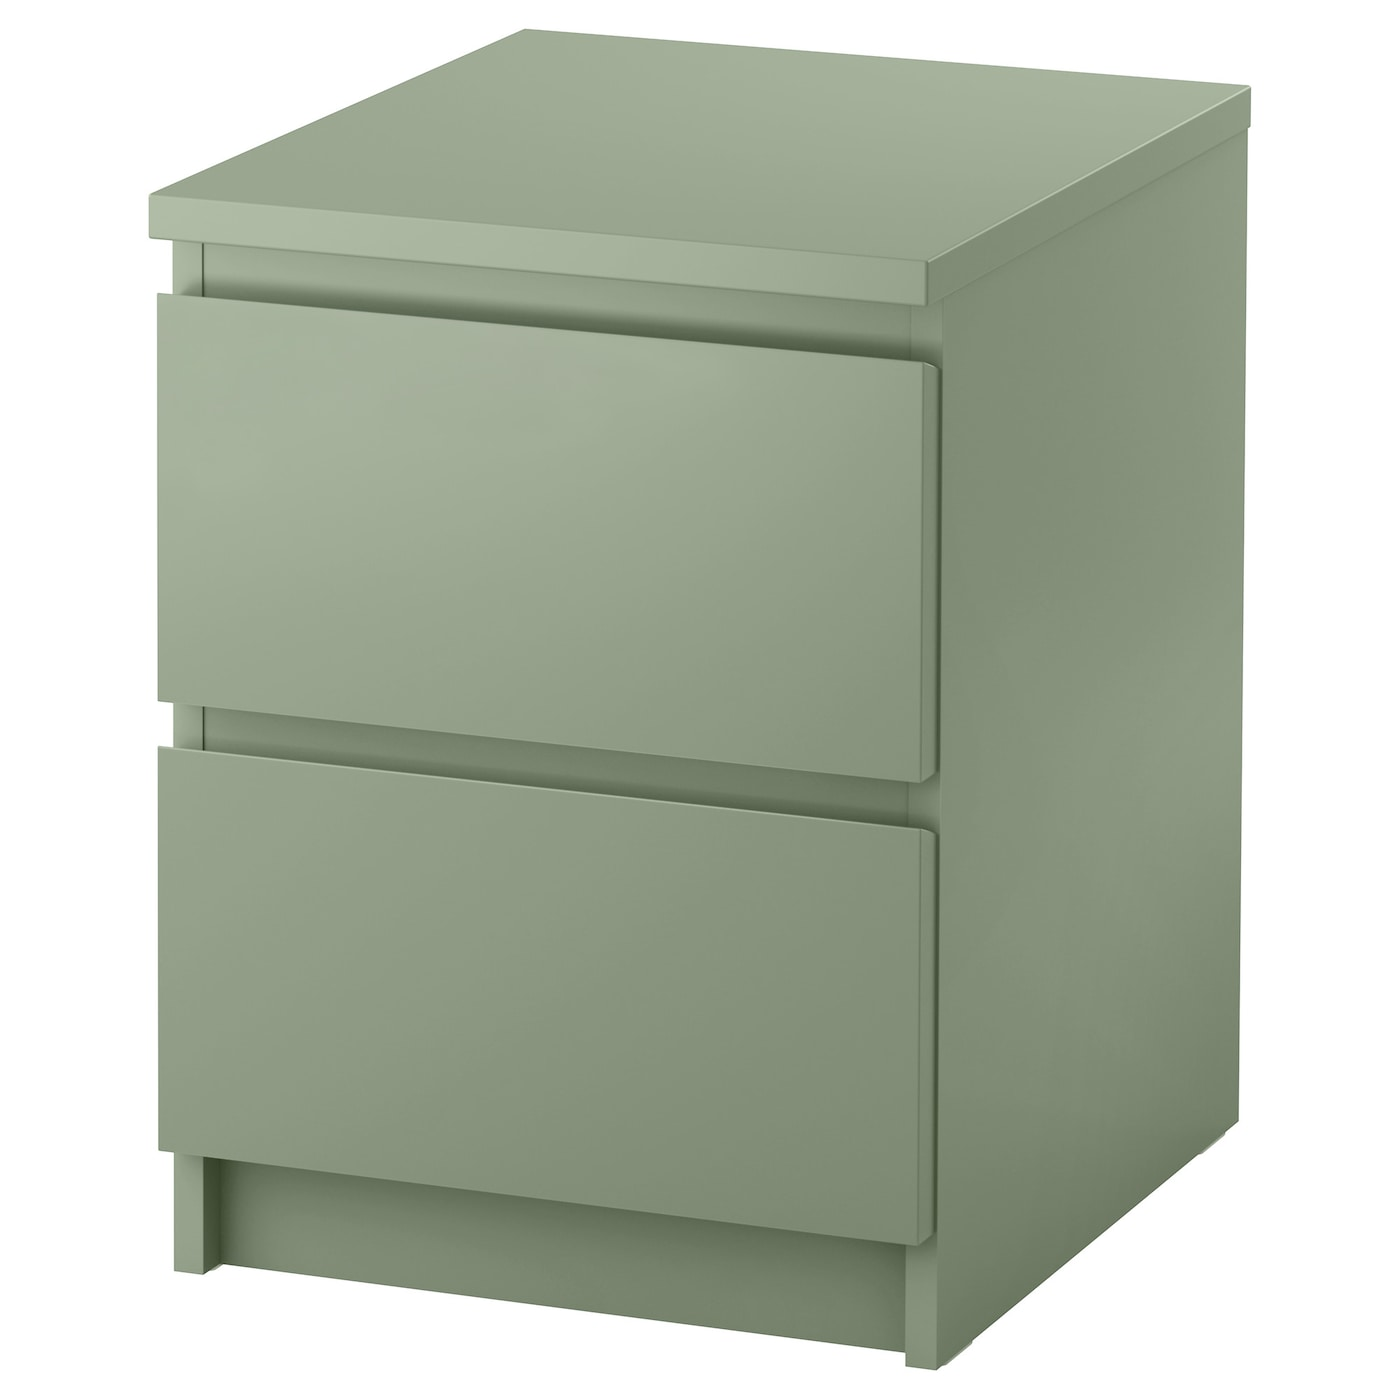 malm commode 2 tiroirs vert clair 40x55 cm ikea. Black Bedroom Furniture Sets. Home Design Ideas